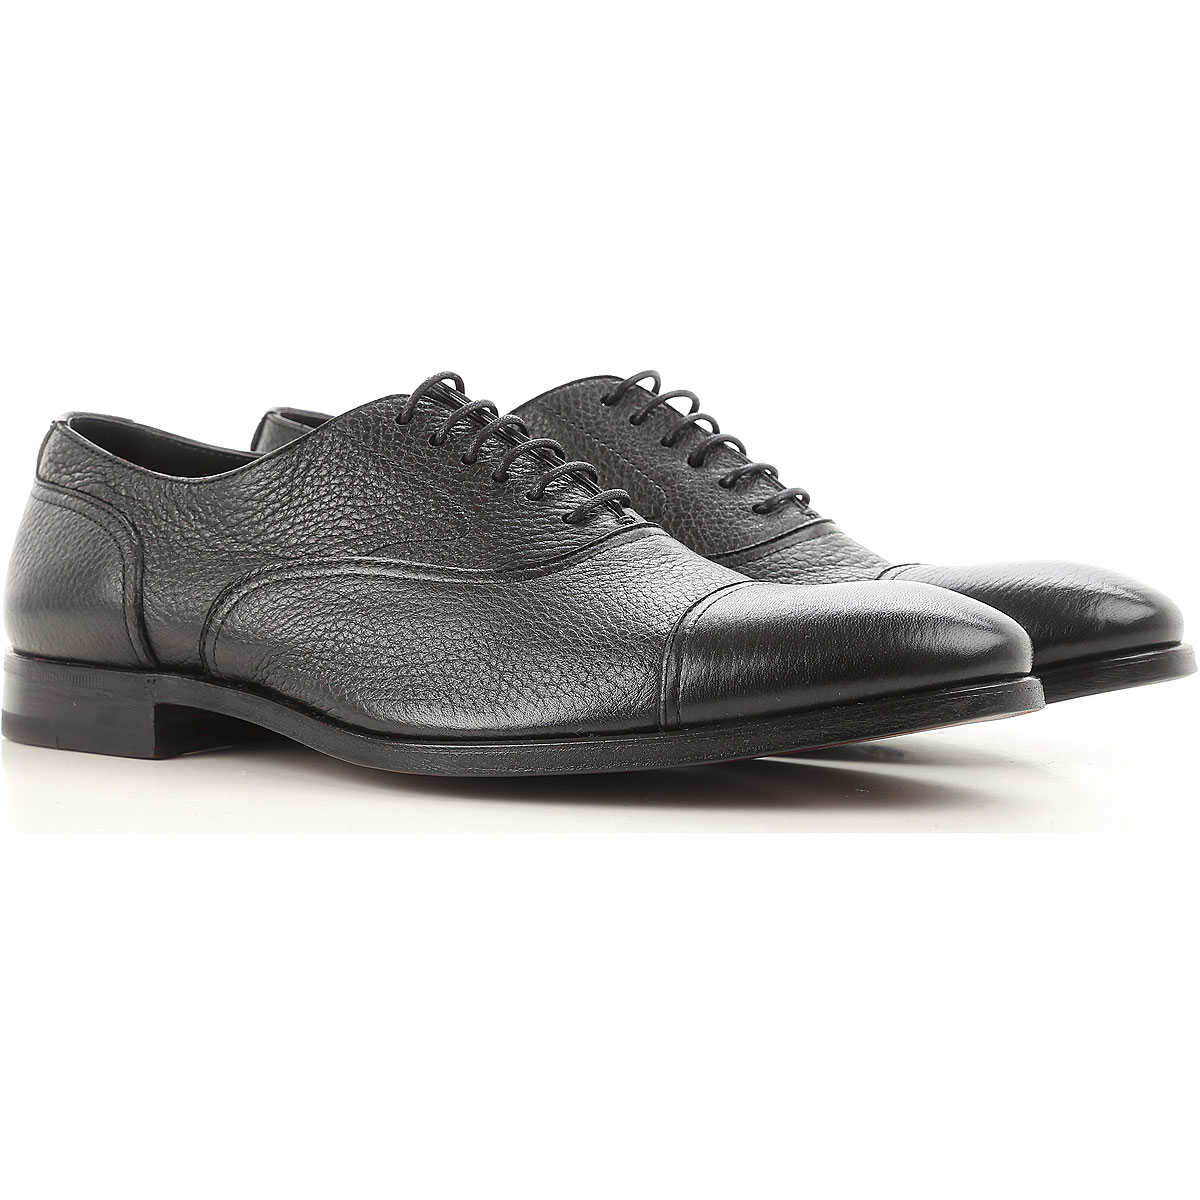 Henderson Lace Up Shoes for Men Oxfords